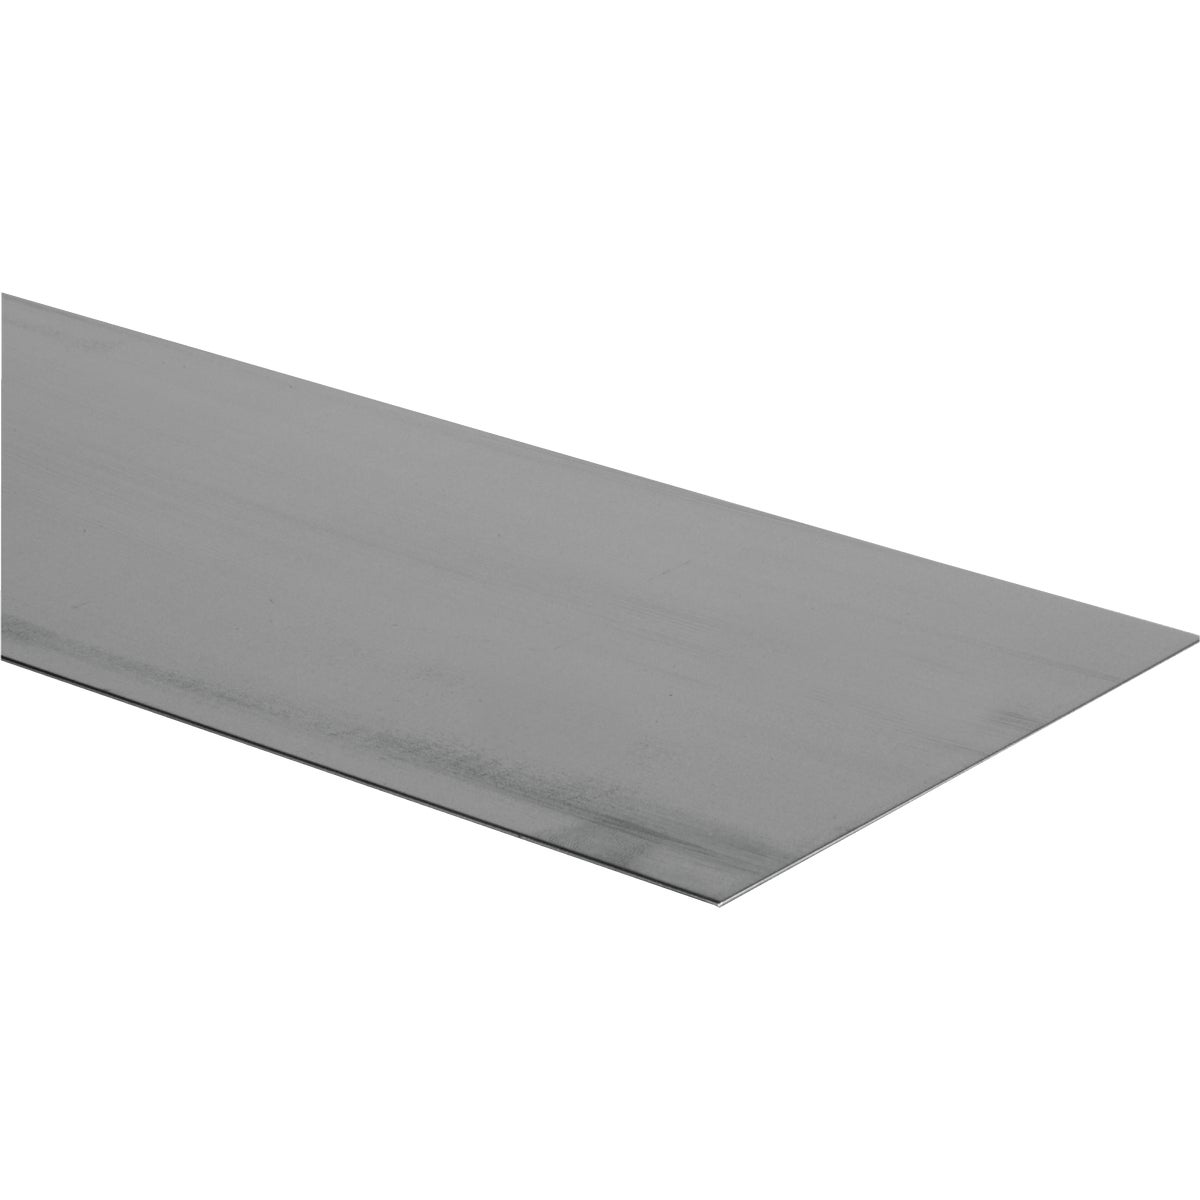 24X8 PS SHEET METAL - N316265 by National Mfg Co